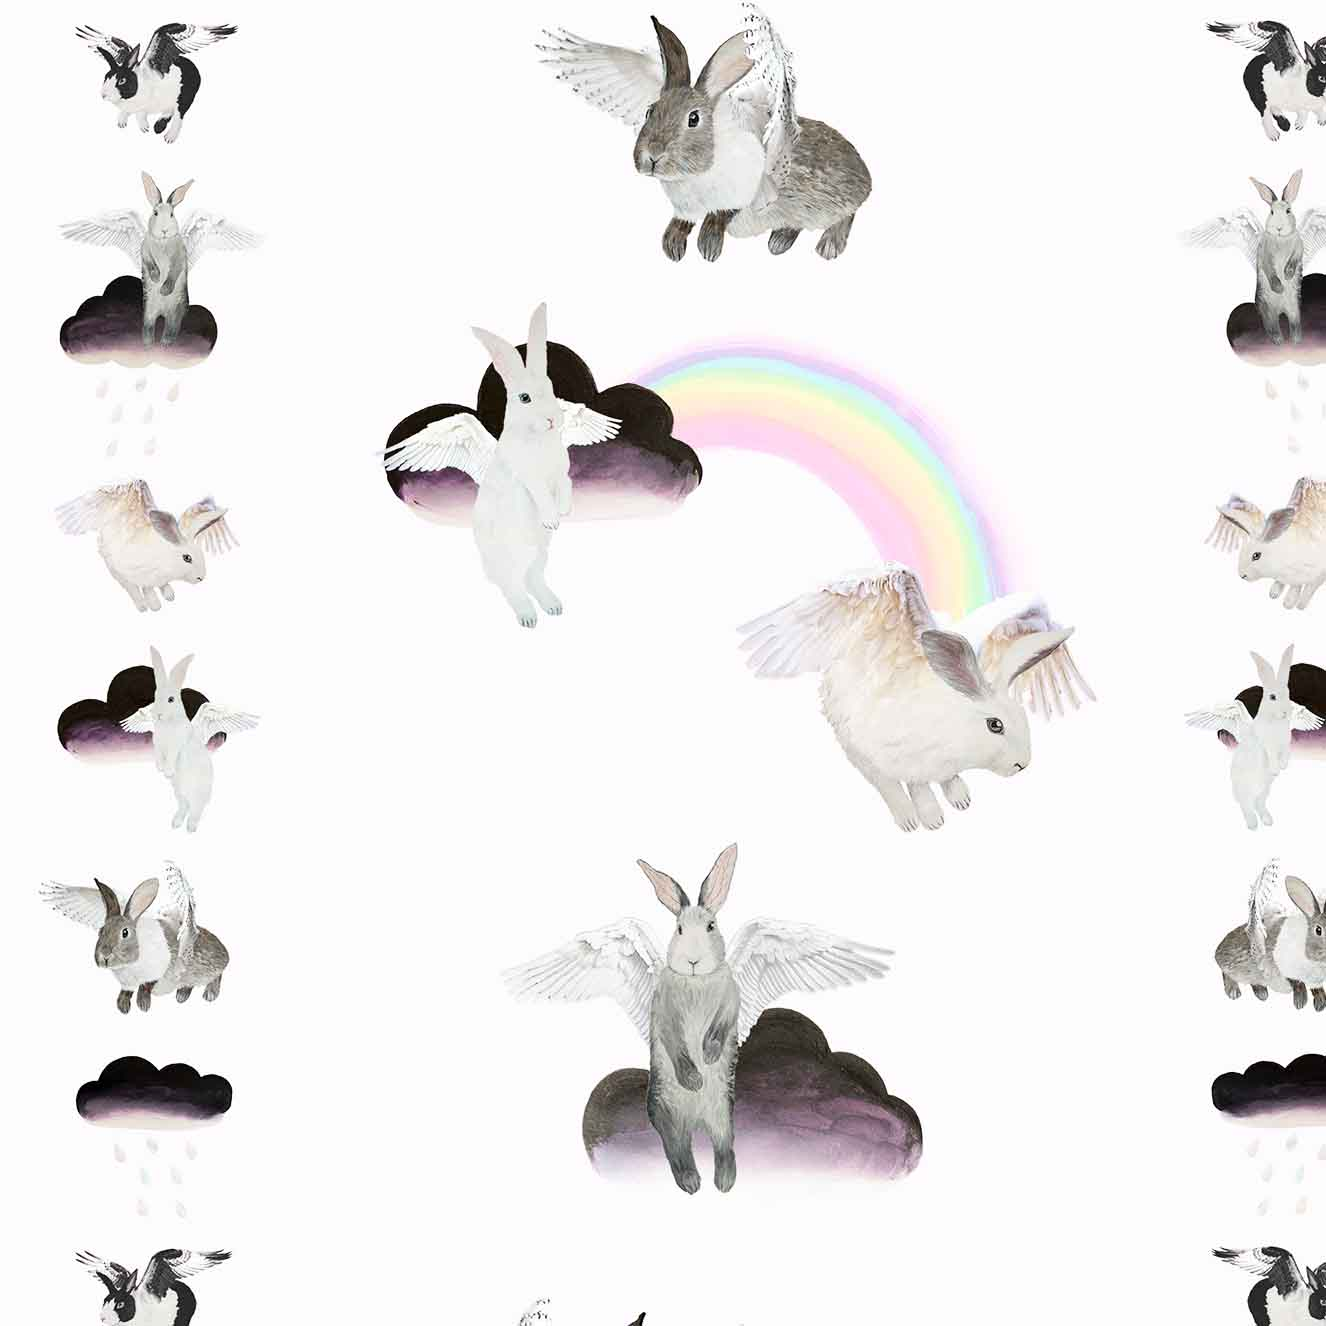 Flying Bunnies wallpaper is a children's dream bedroom or nursery scheme; fluffy bunny rabbits, soft sugary rainbows, and ombre watercolour clouds.